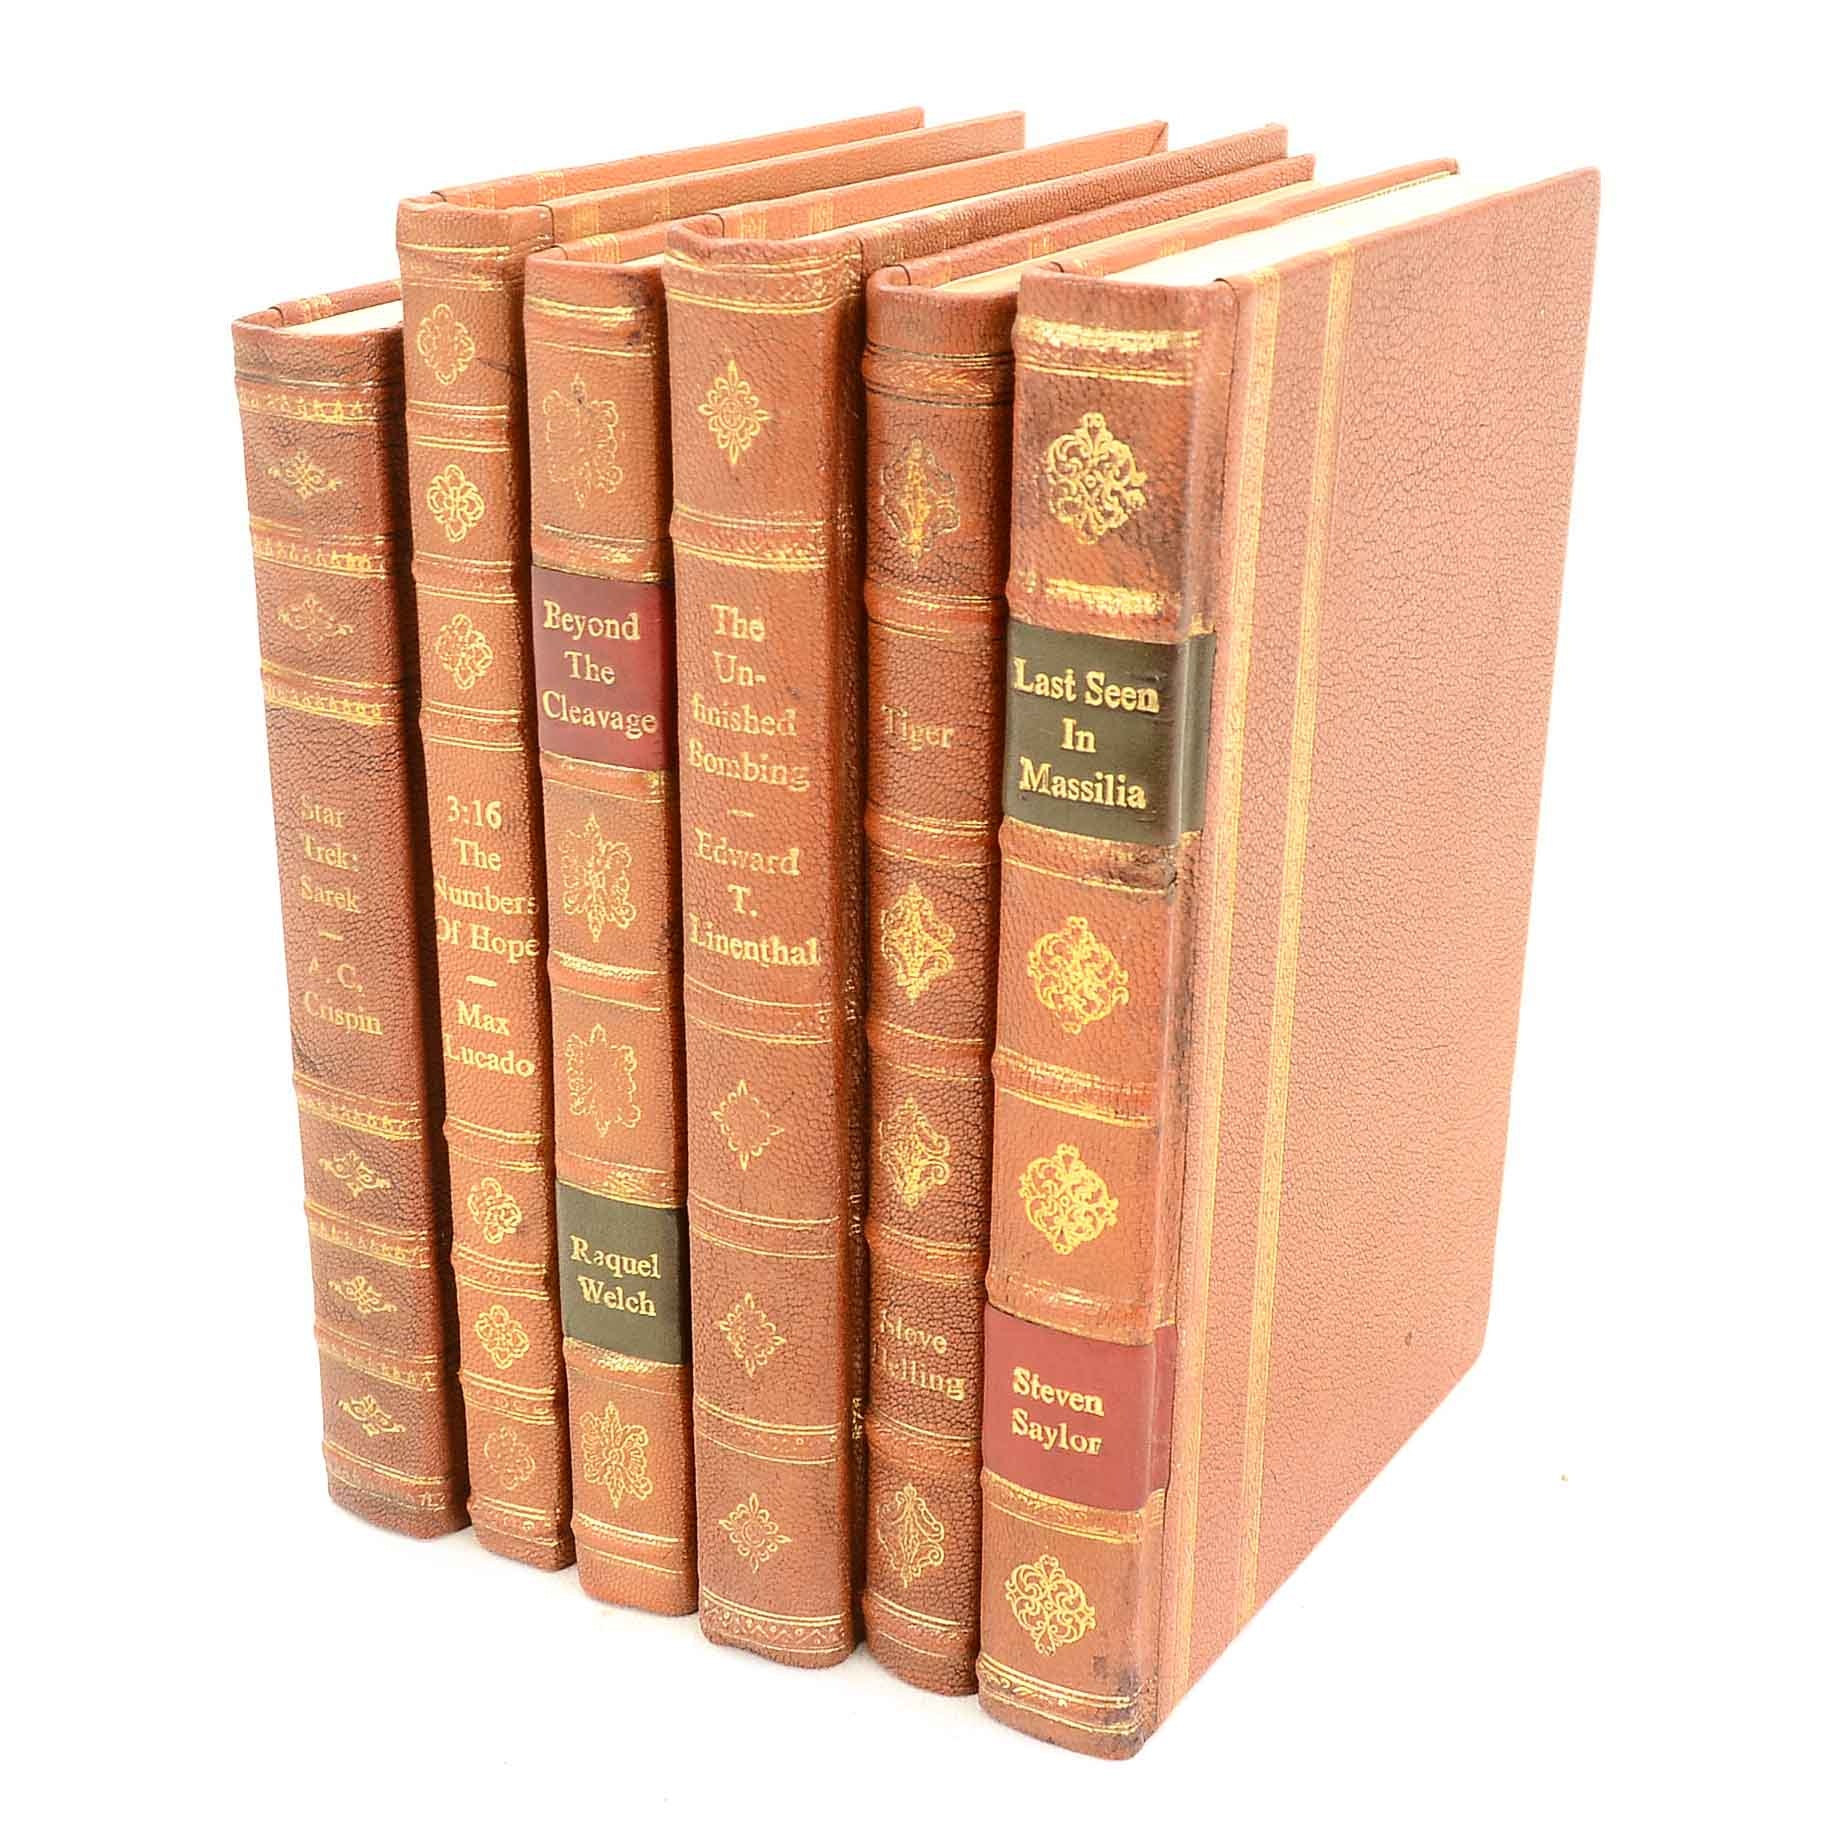 Assorted Hardcover Books